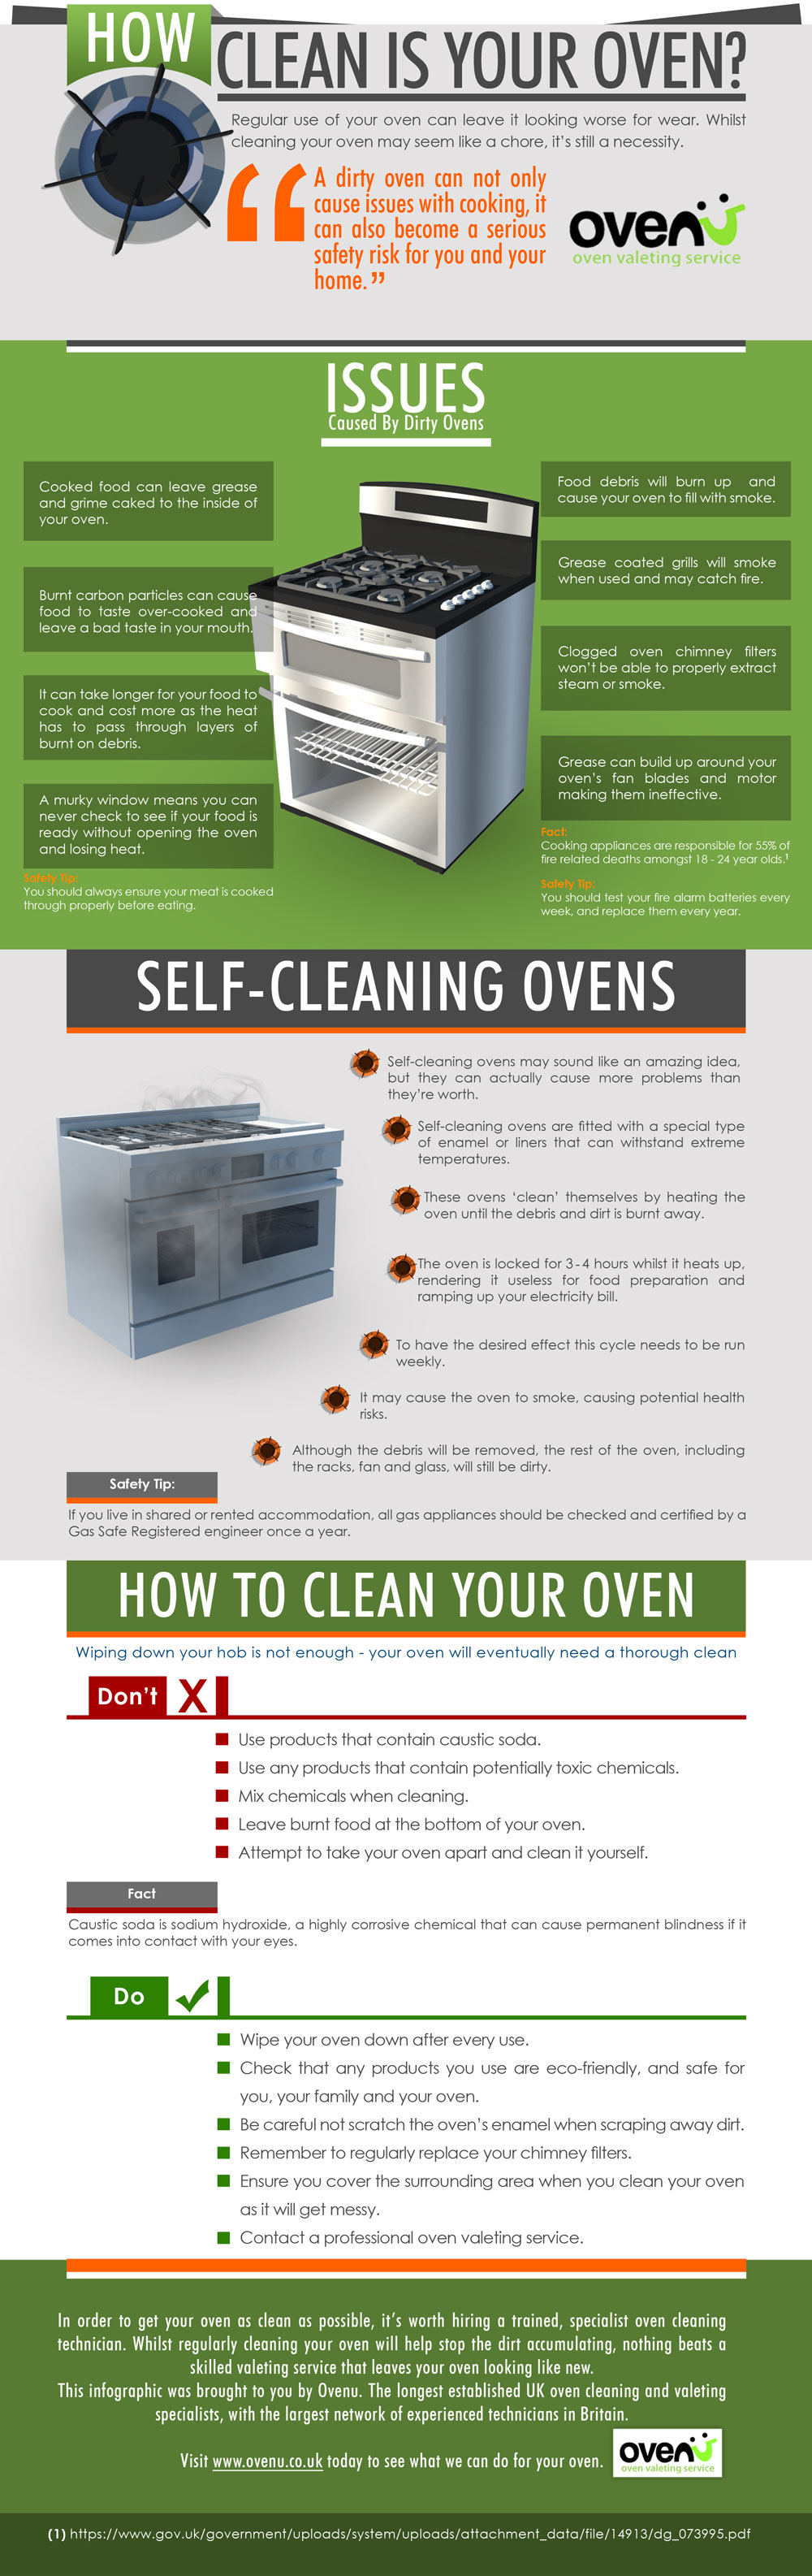 How Clean Is Your Oven